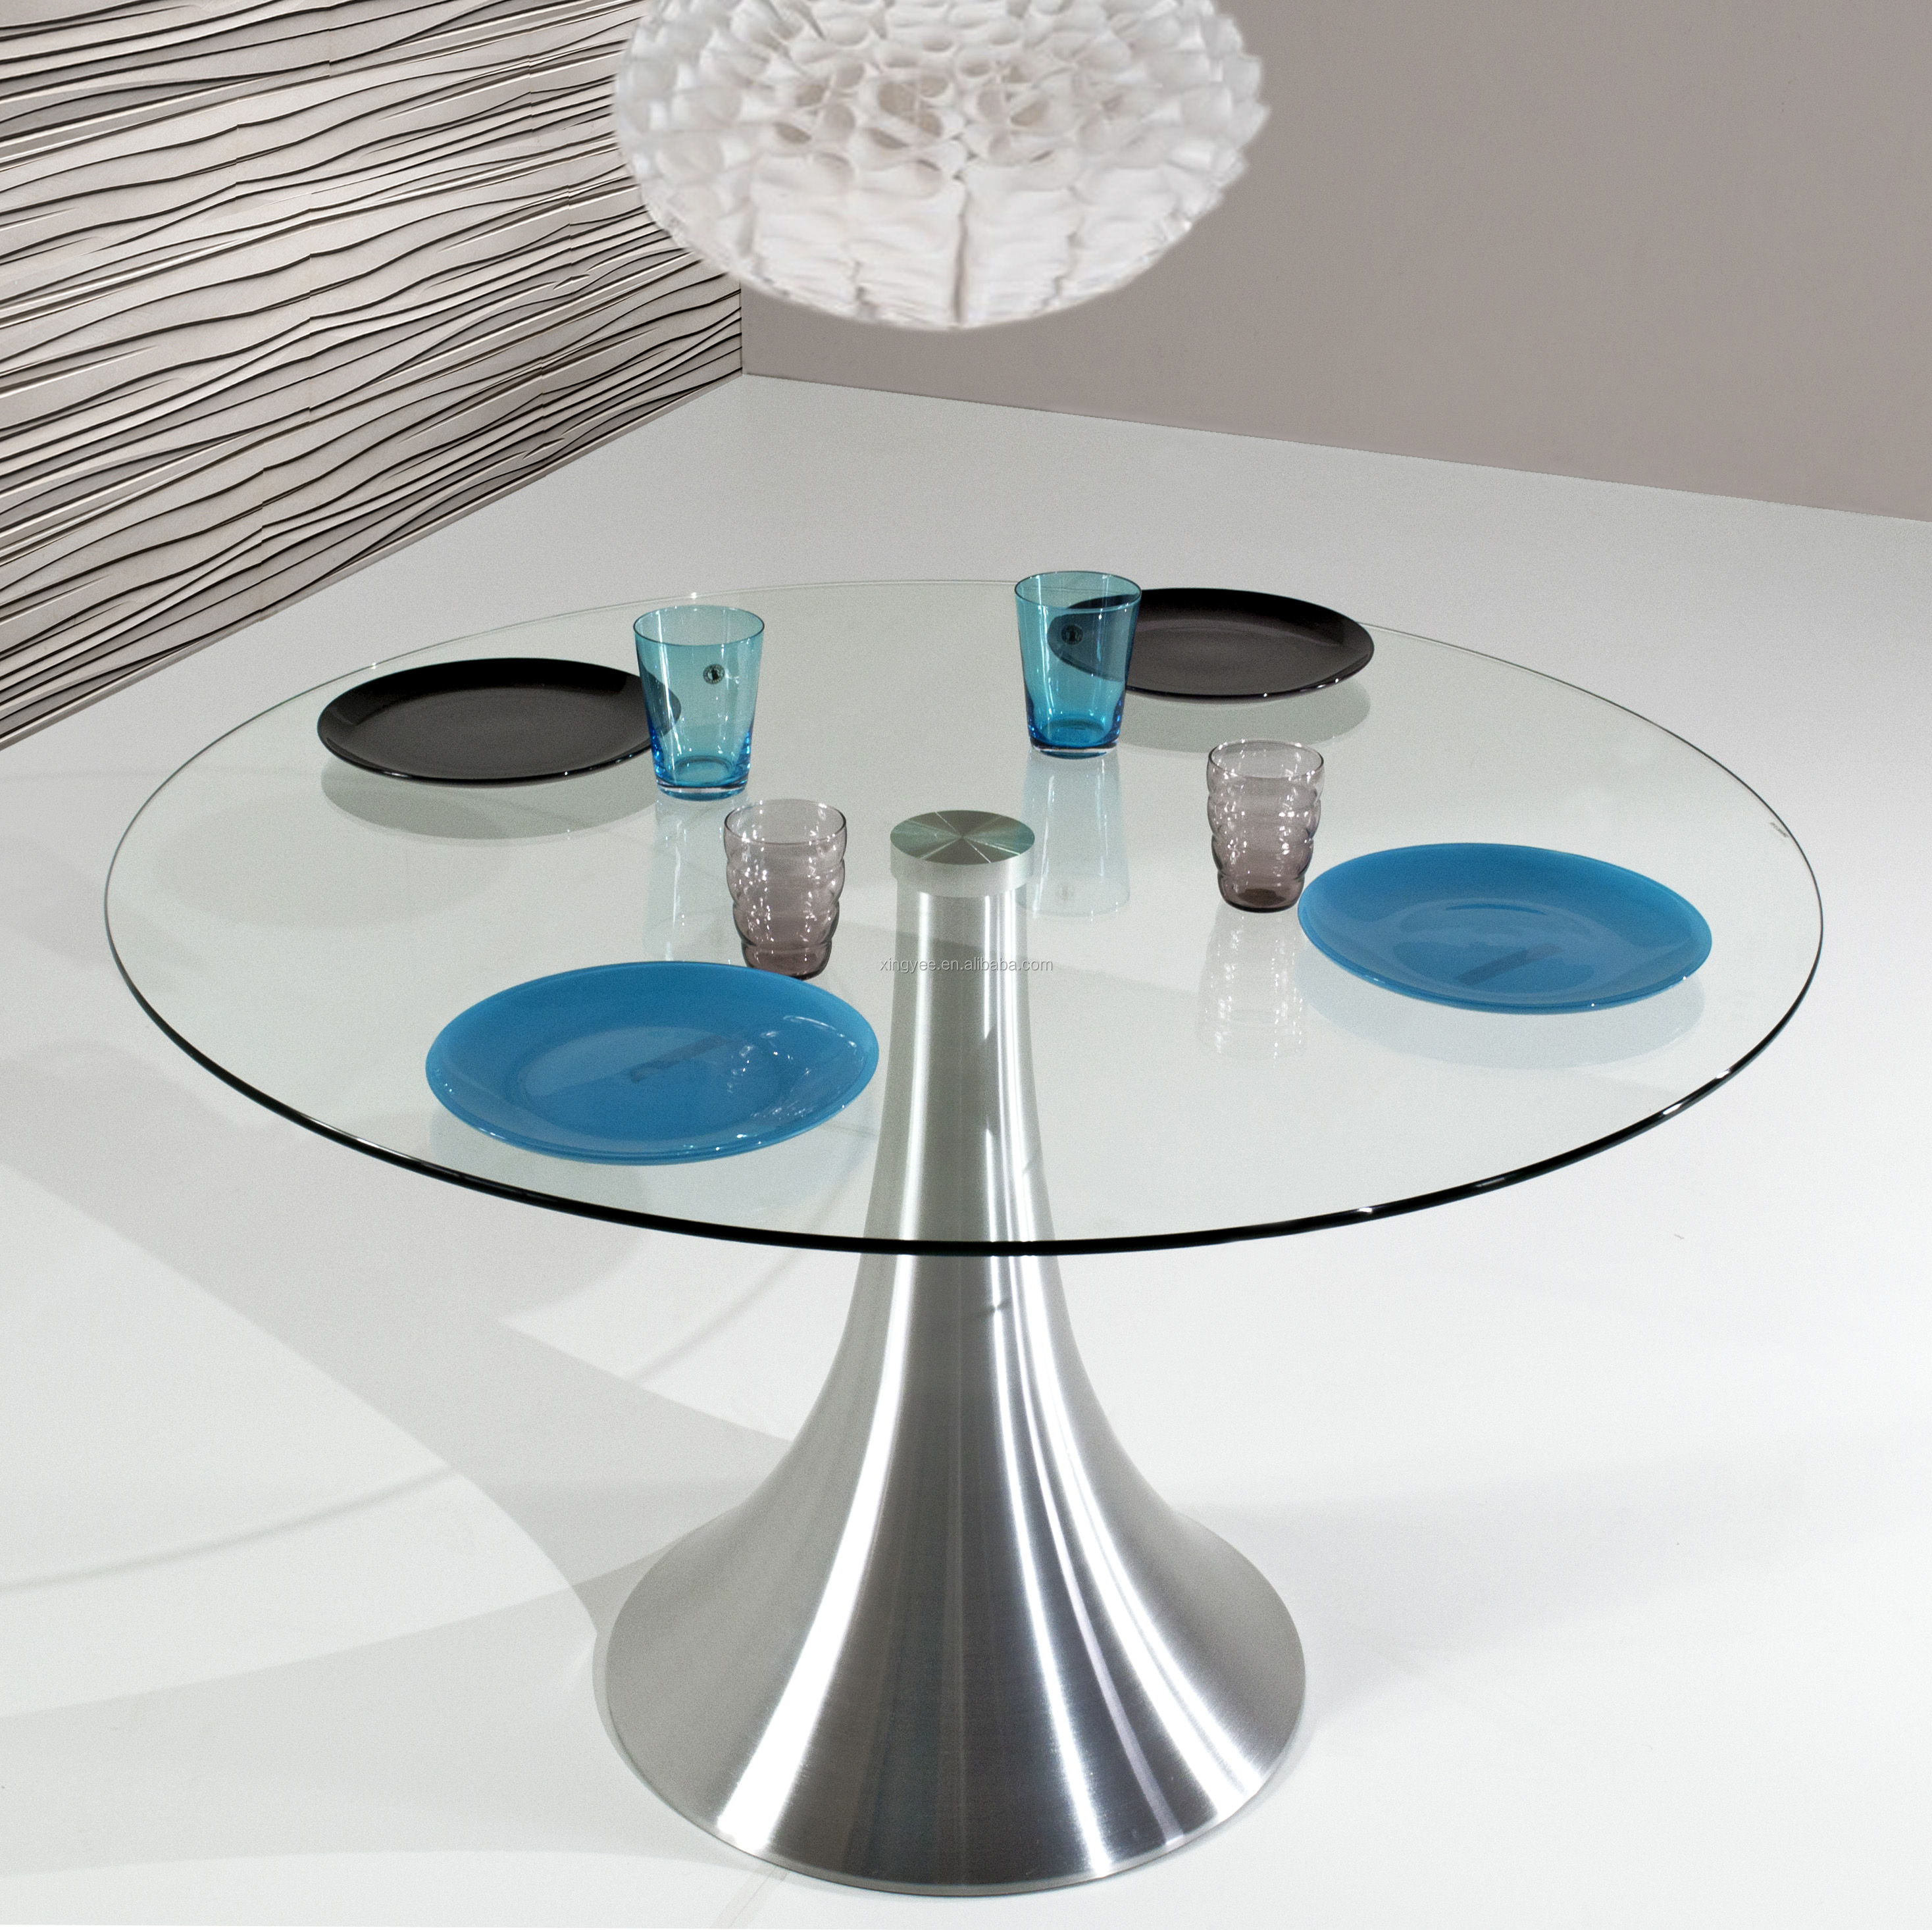 Modern Furniture 9 Seater Glass Dining Table Homes Design Round ...